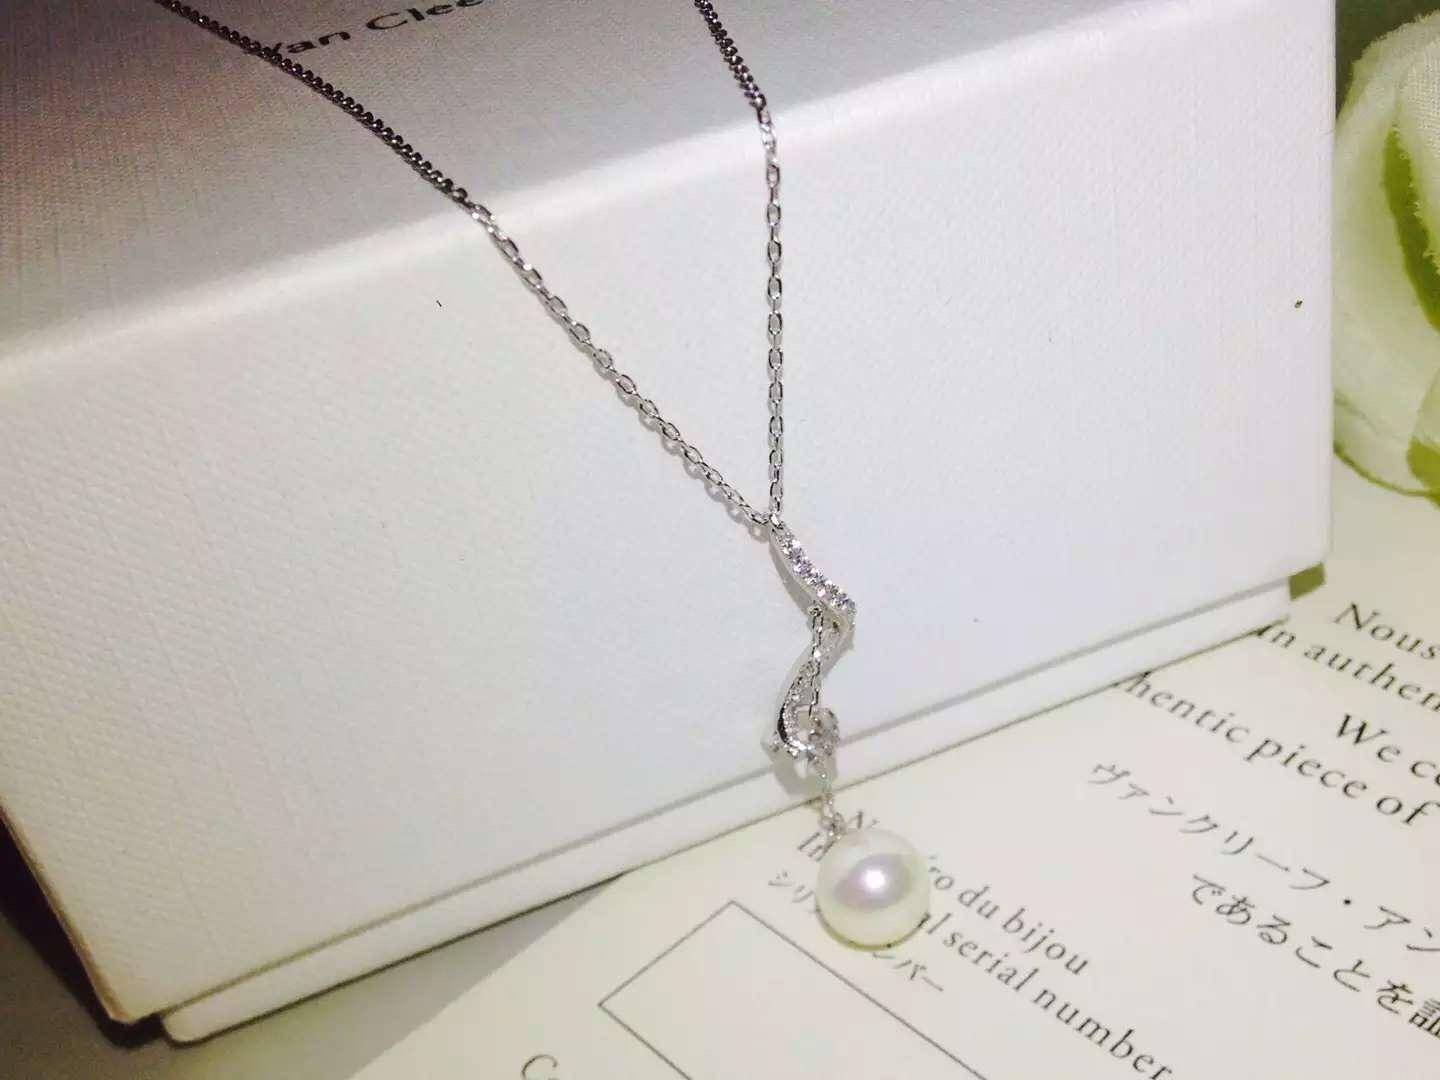 NEW ARRIVAL Neffly elaclusive CHA classic pearl necklace superior drafmanship Sterling 925 Silver wh